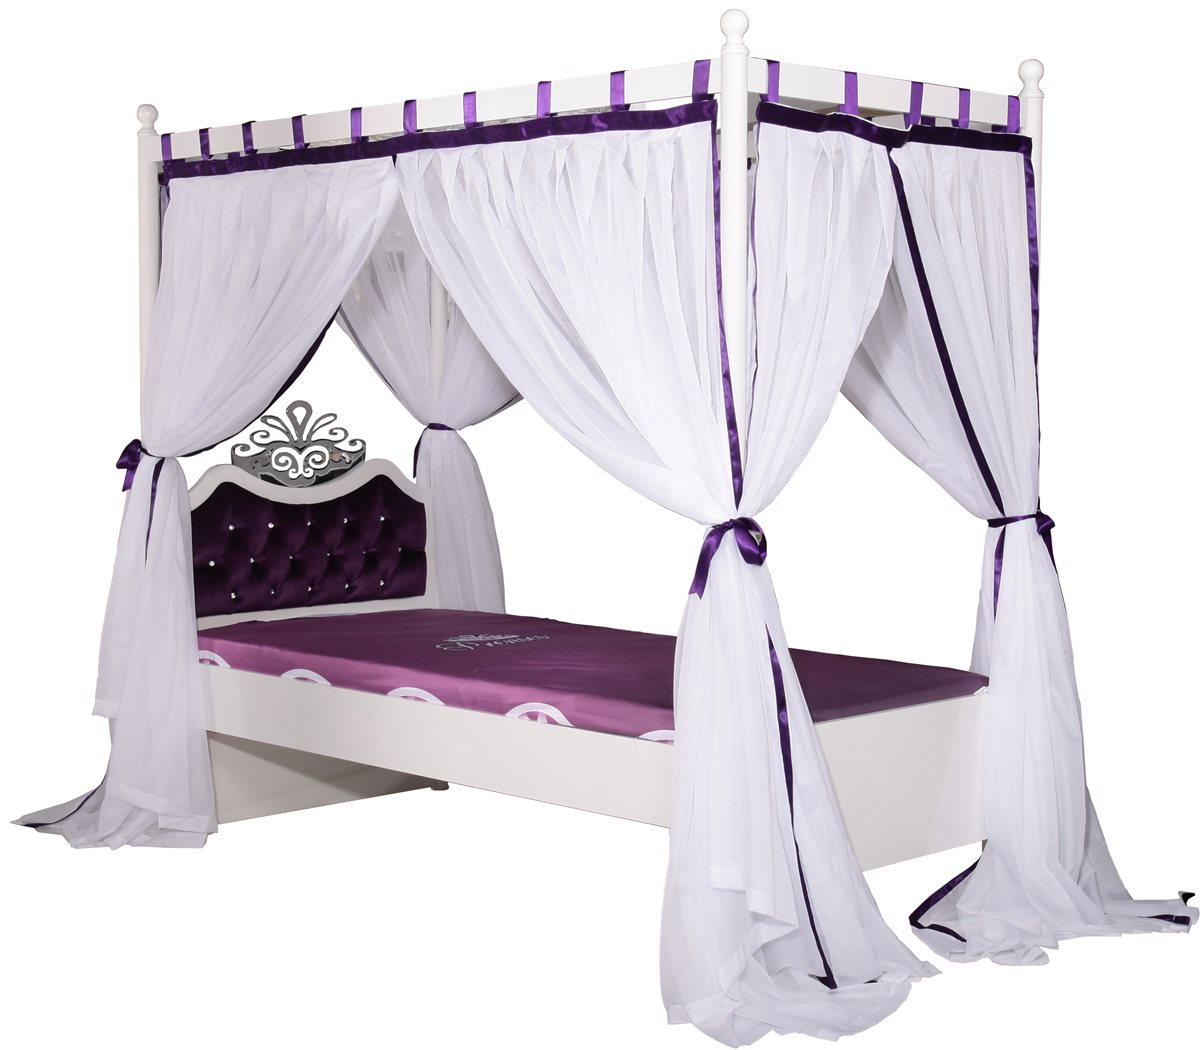 anastasia himmelbett kinderbett himmel m dchen bett prinzessin ebay. Black Bedroom Furniture Sets. Home Design Ideas